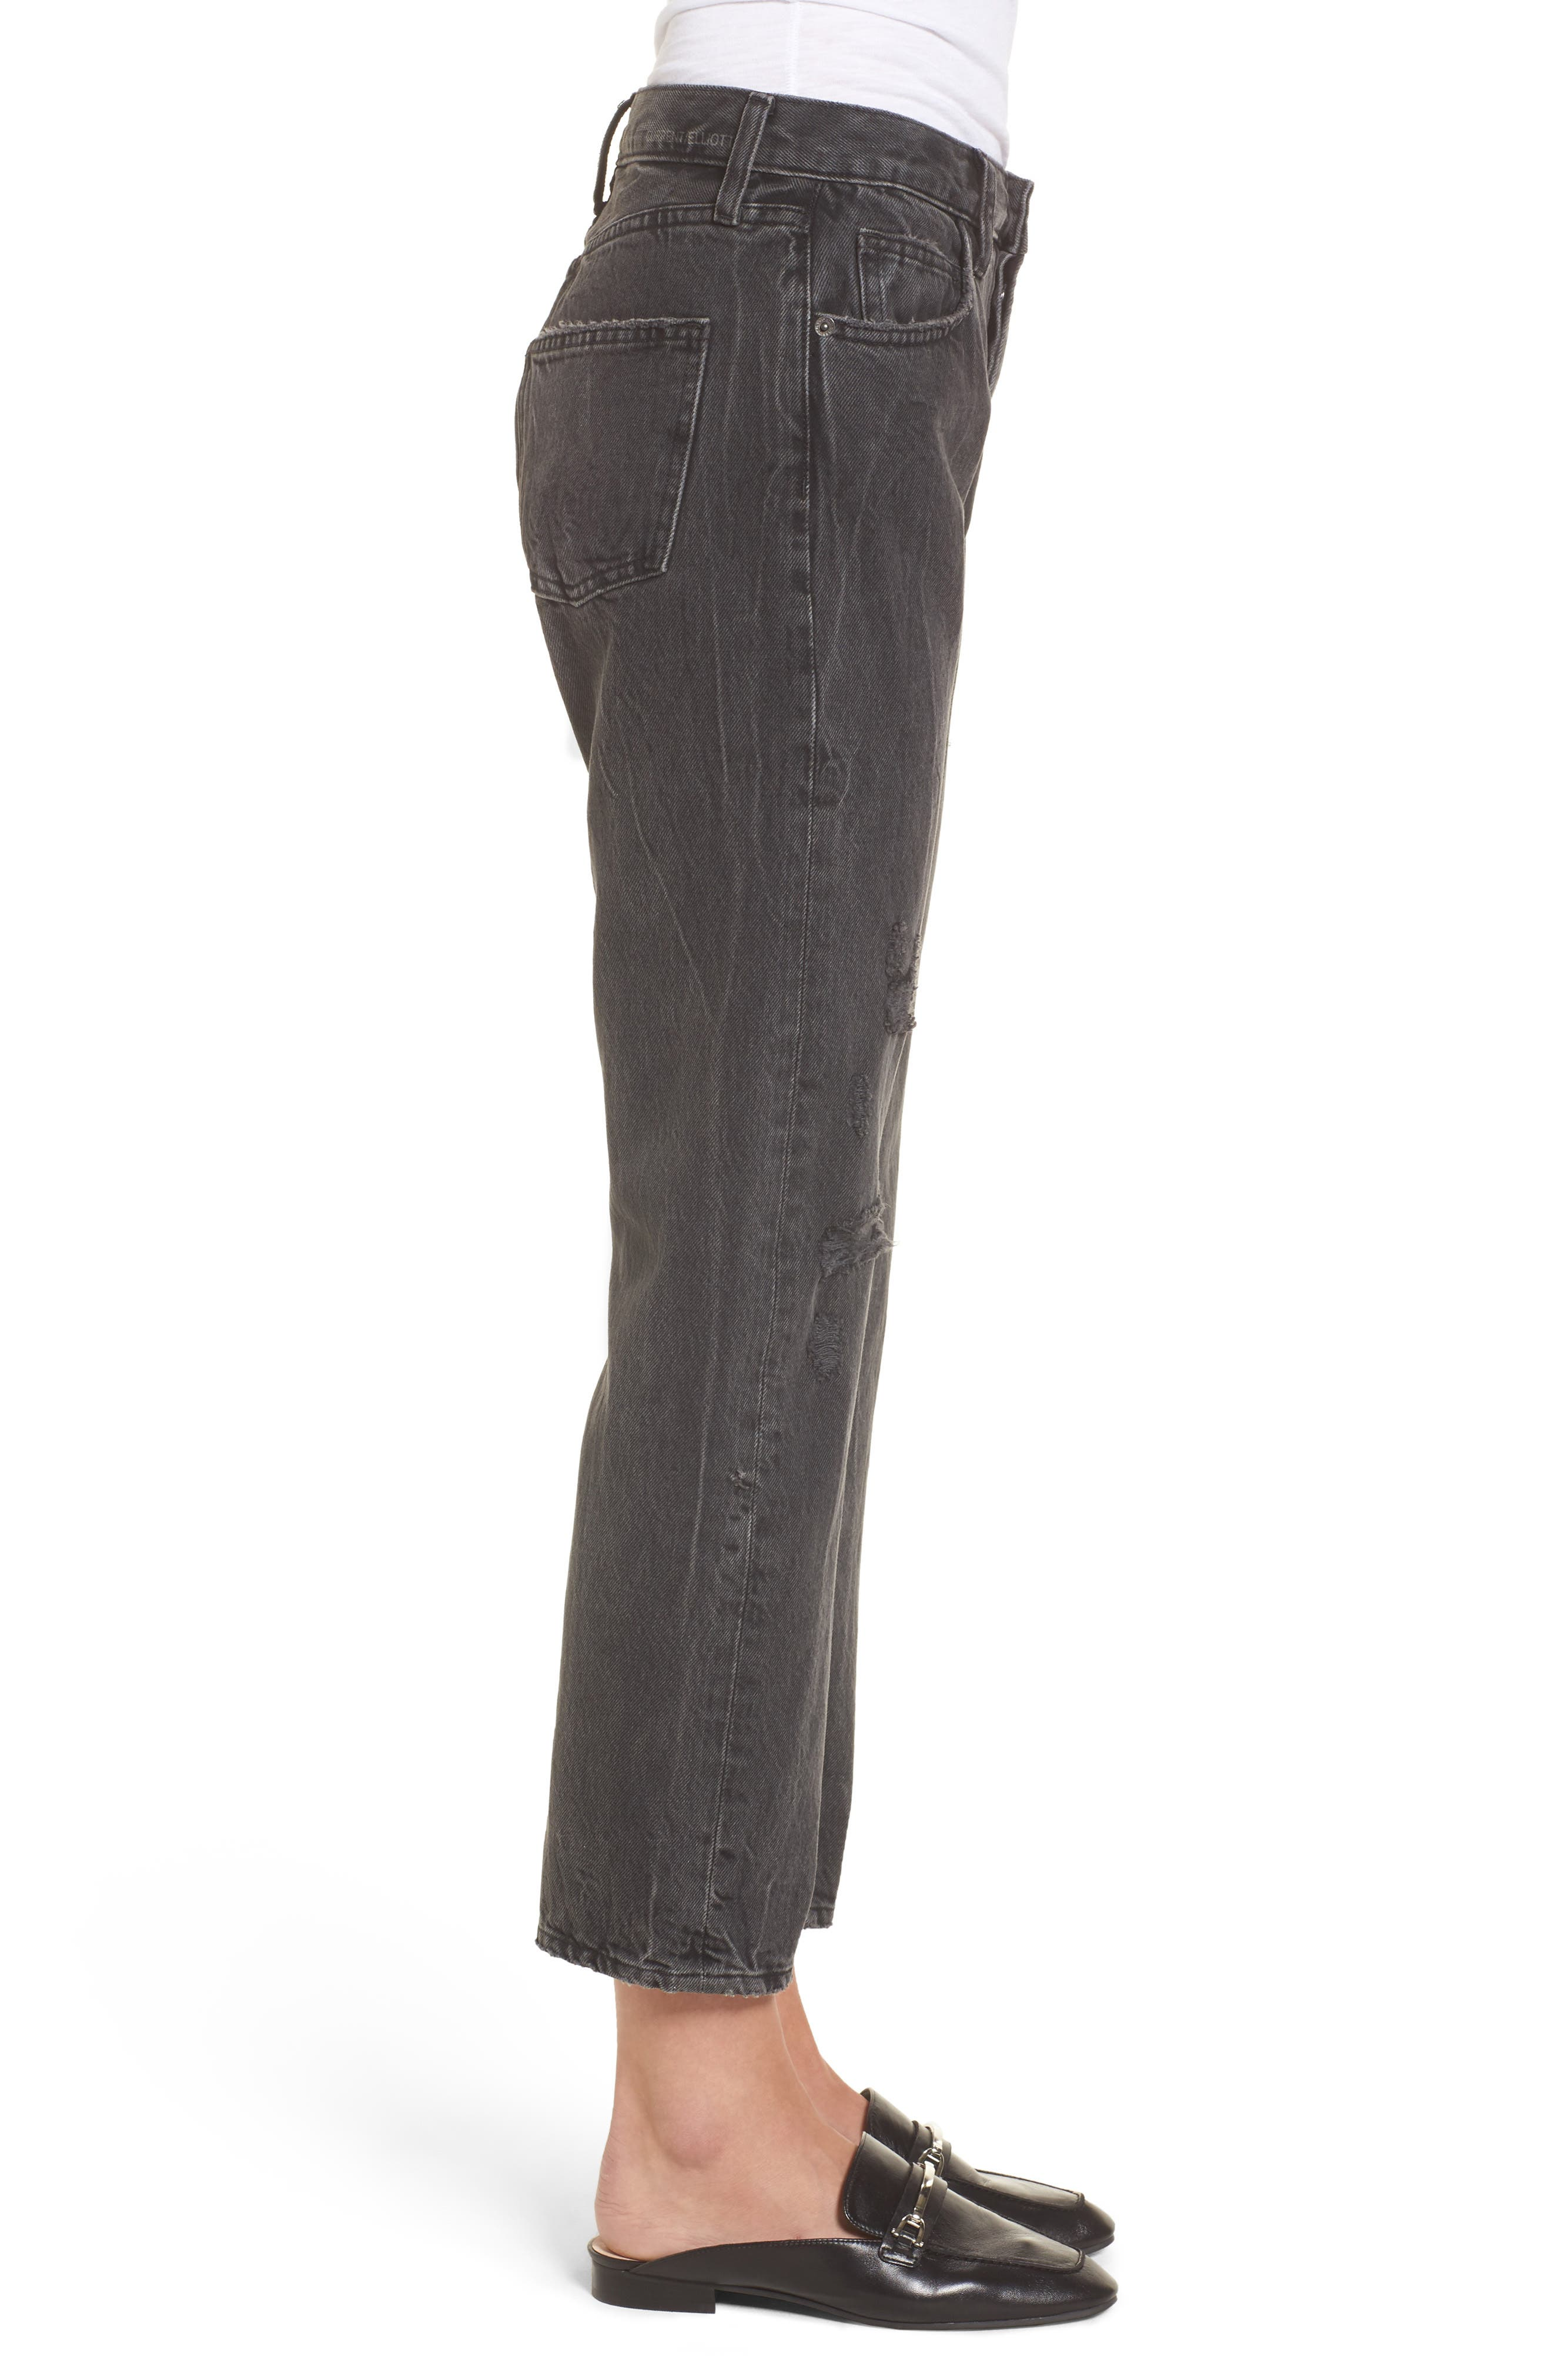 Alternate Image 3  - Current/Elliott The Original Straight Leg Crop Jeans (Valo Destroy)